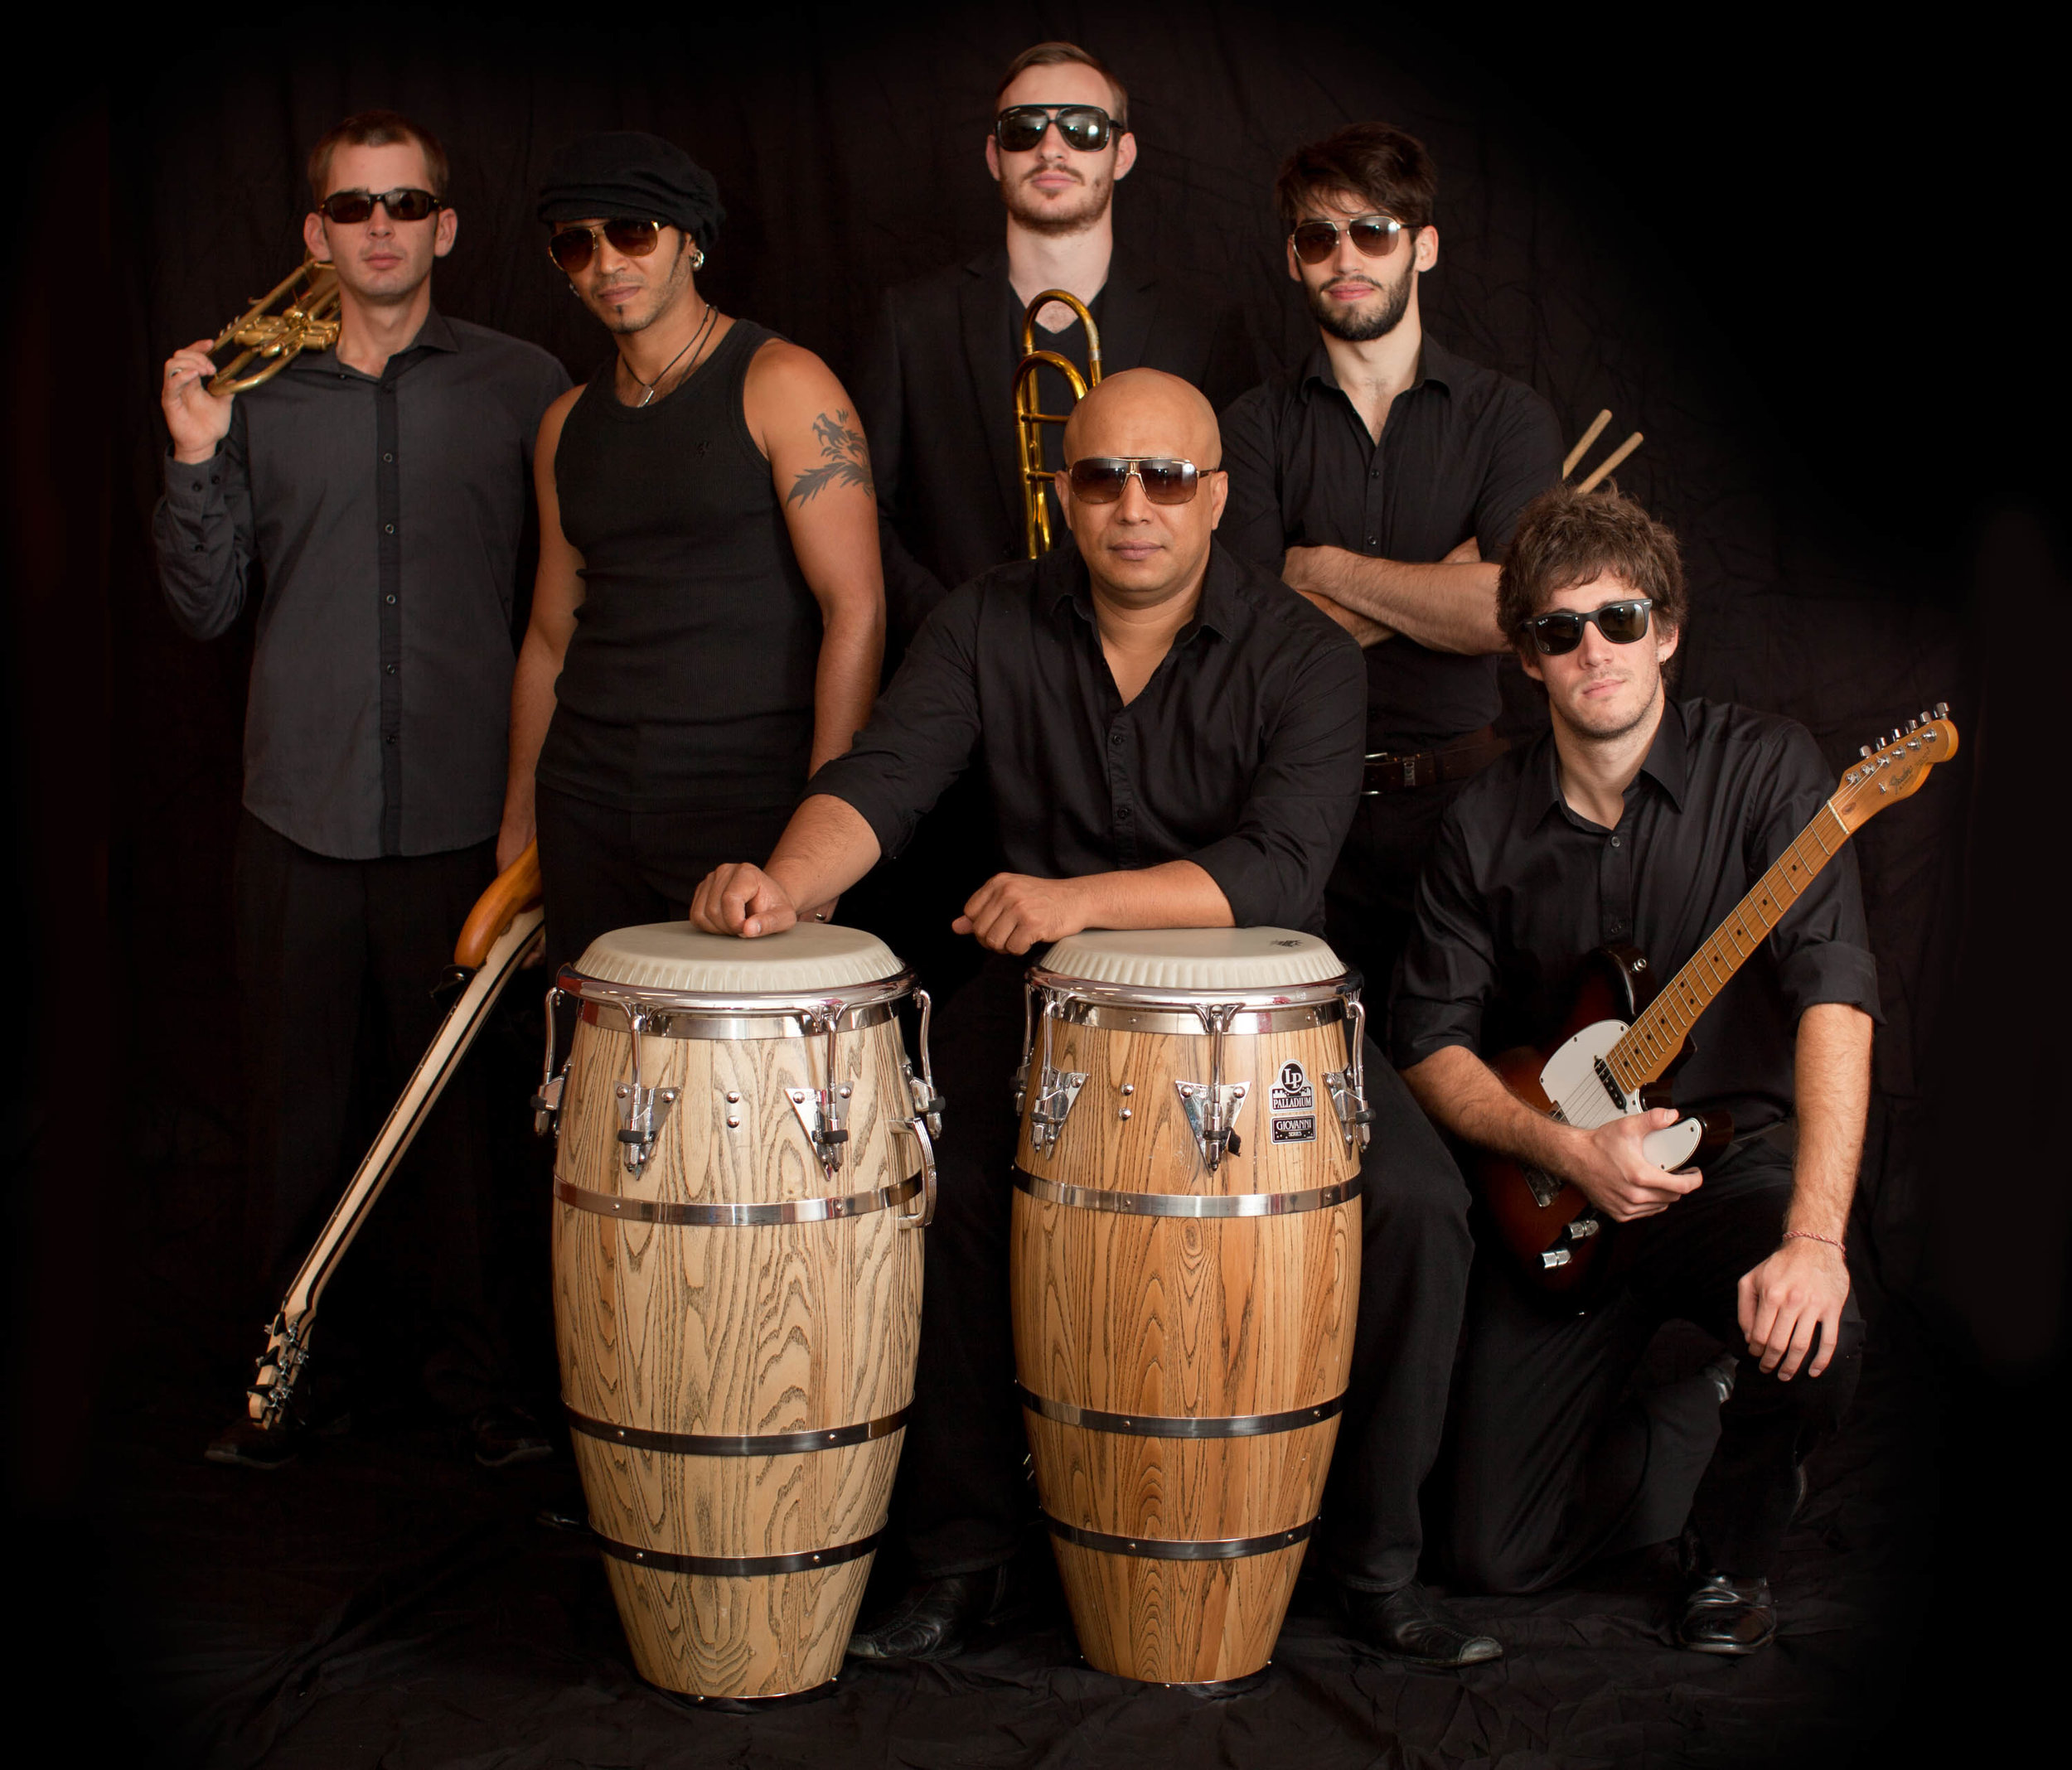 Hugo with his band Soul Macumbia. Photo courtesy of Philip Johns